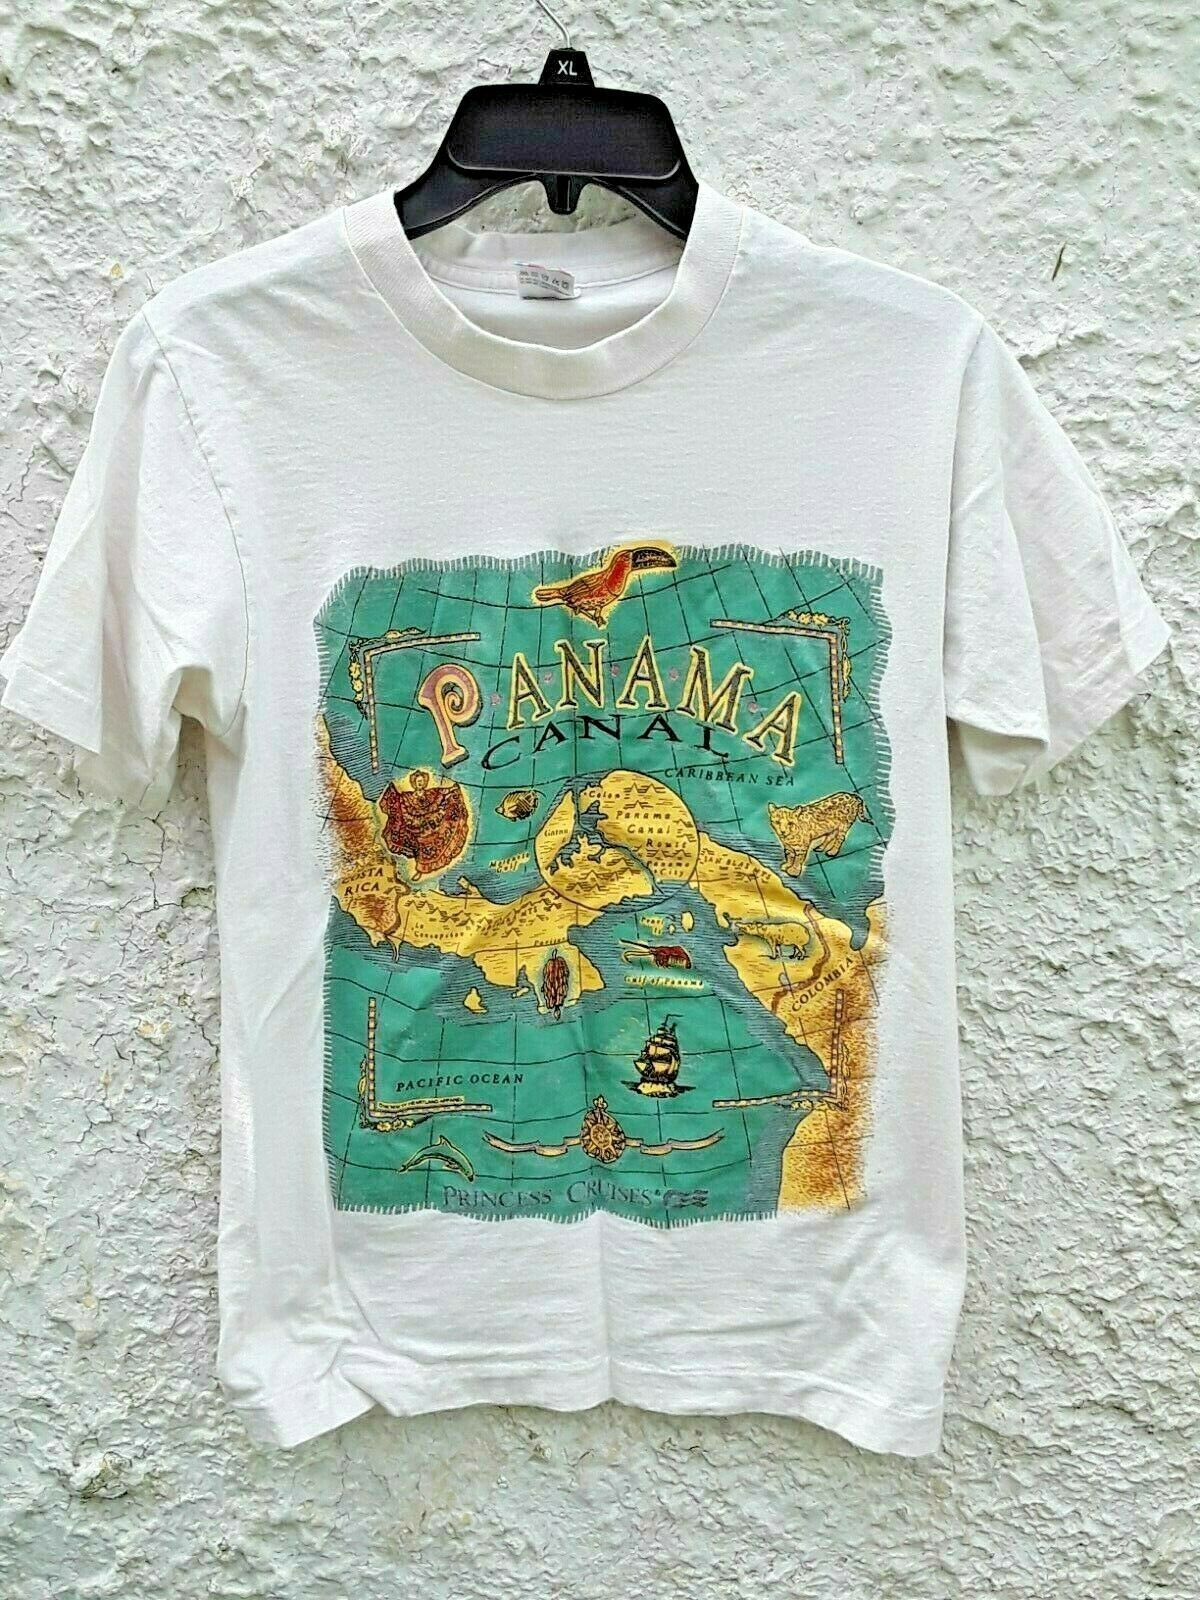 Vintage 90s Panama Canal Shirt Fruit of The Loom Made in